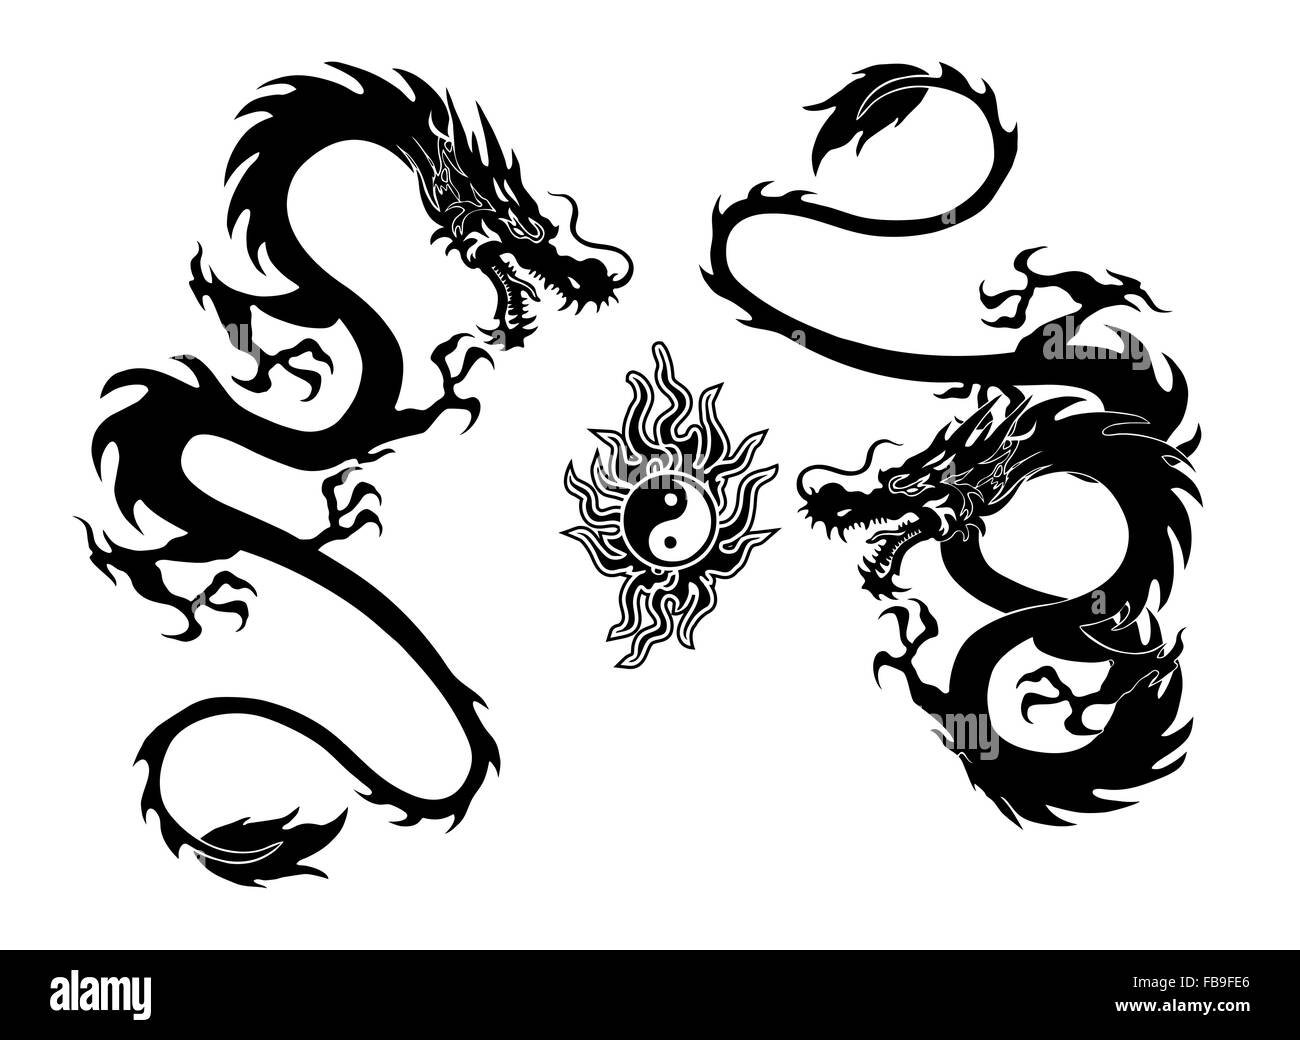 Illustration Of A Two Dragon And Yinyang Symbol Tattoo Isolated On